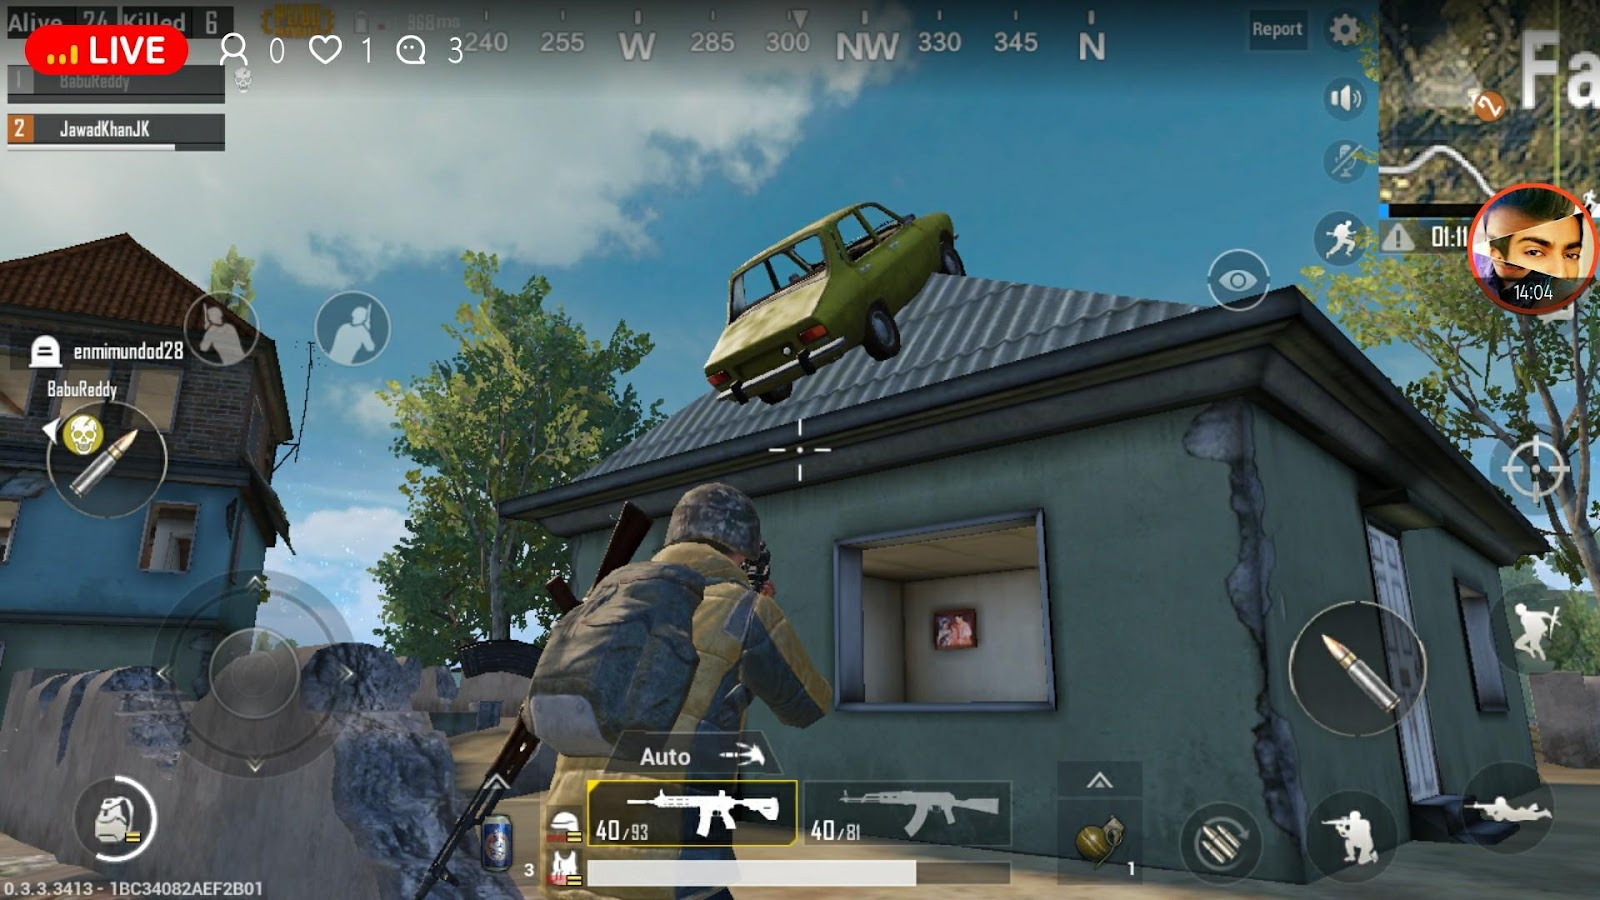 https://www.xemgame.com/data/pictures/xemgame/2018/04/09/pubg-mobile-hai-huoc-1.jpg